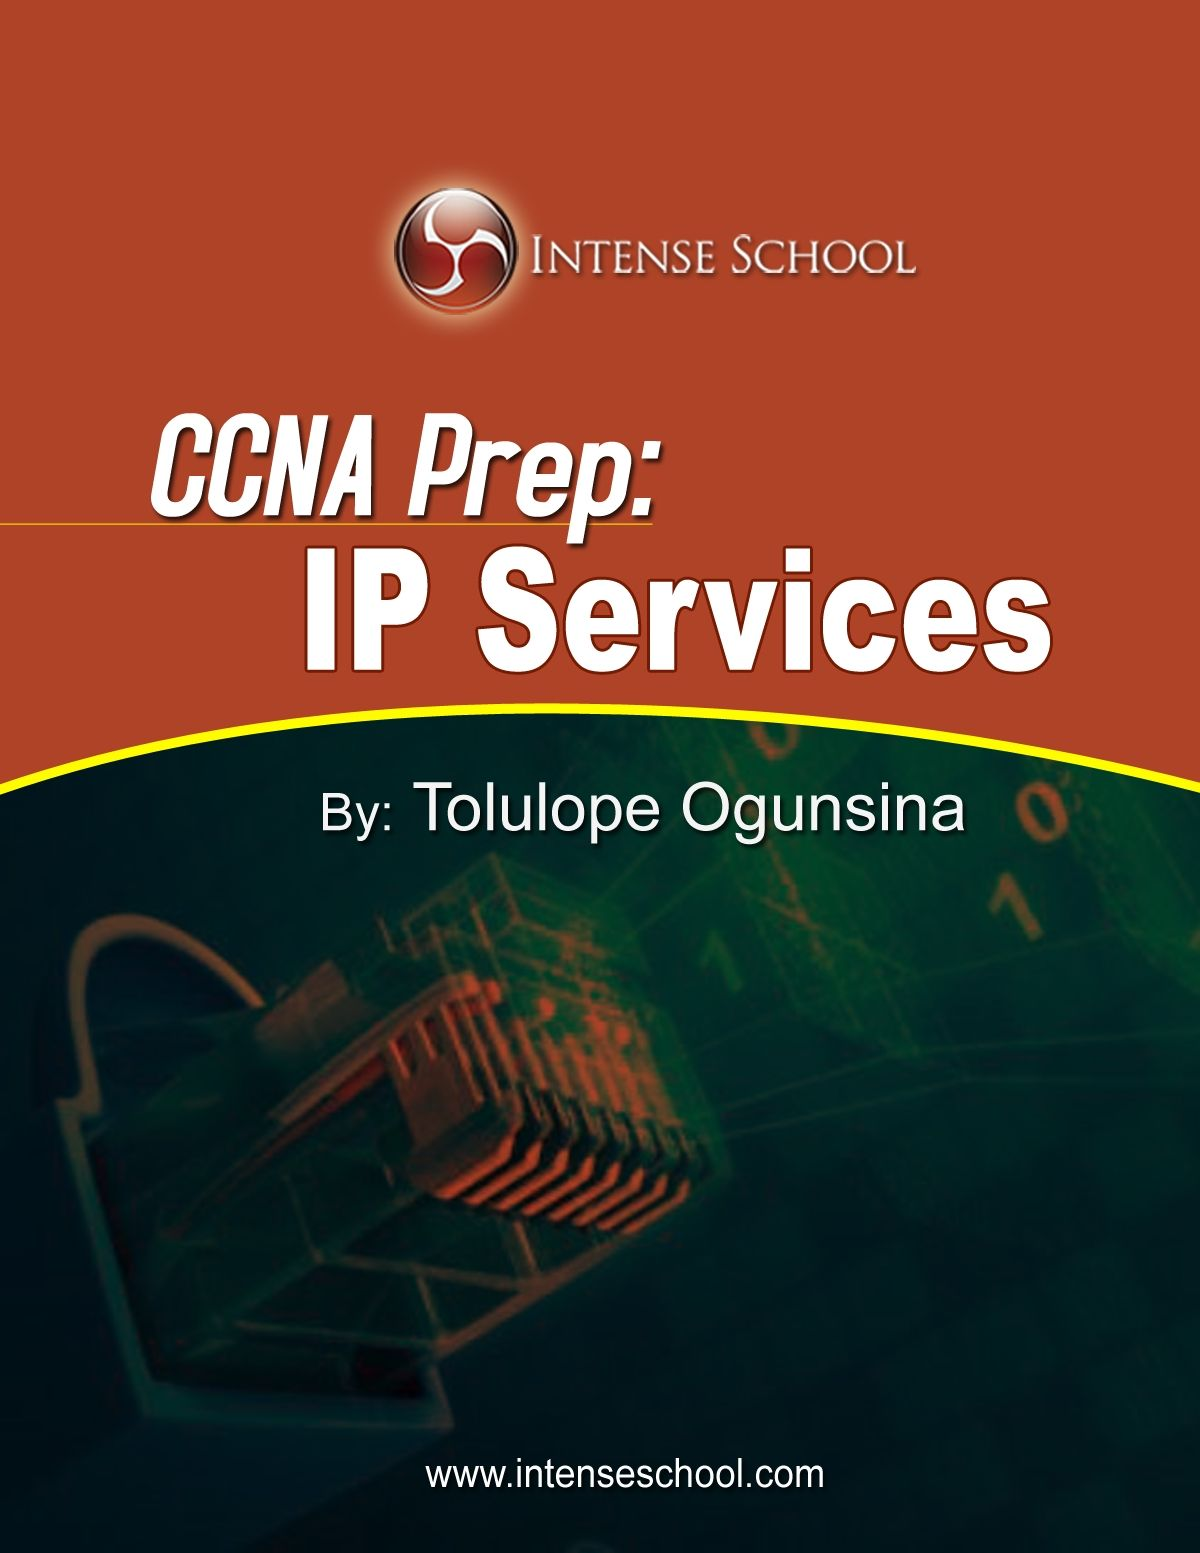 2013 ccna study guide 200 120 ebook array 40 page ebook one of the major changes to the ccna examination was rh fandeluxe Gallery